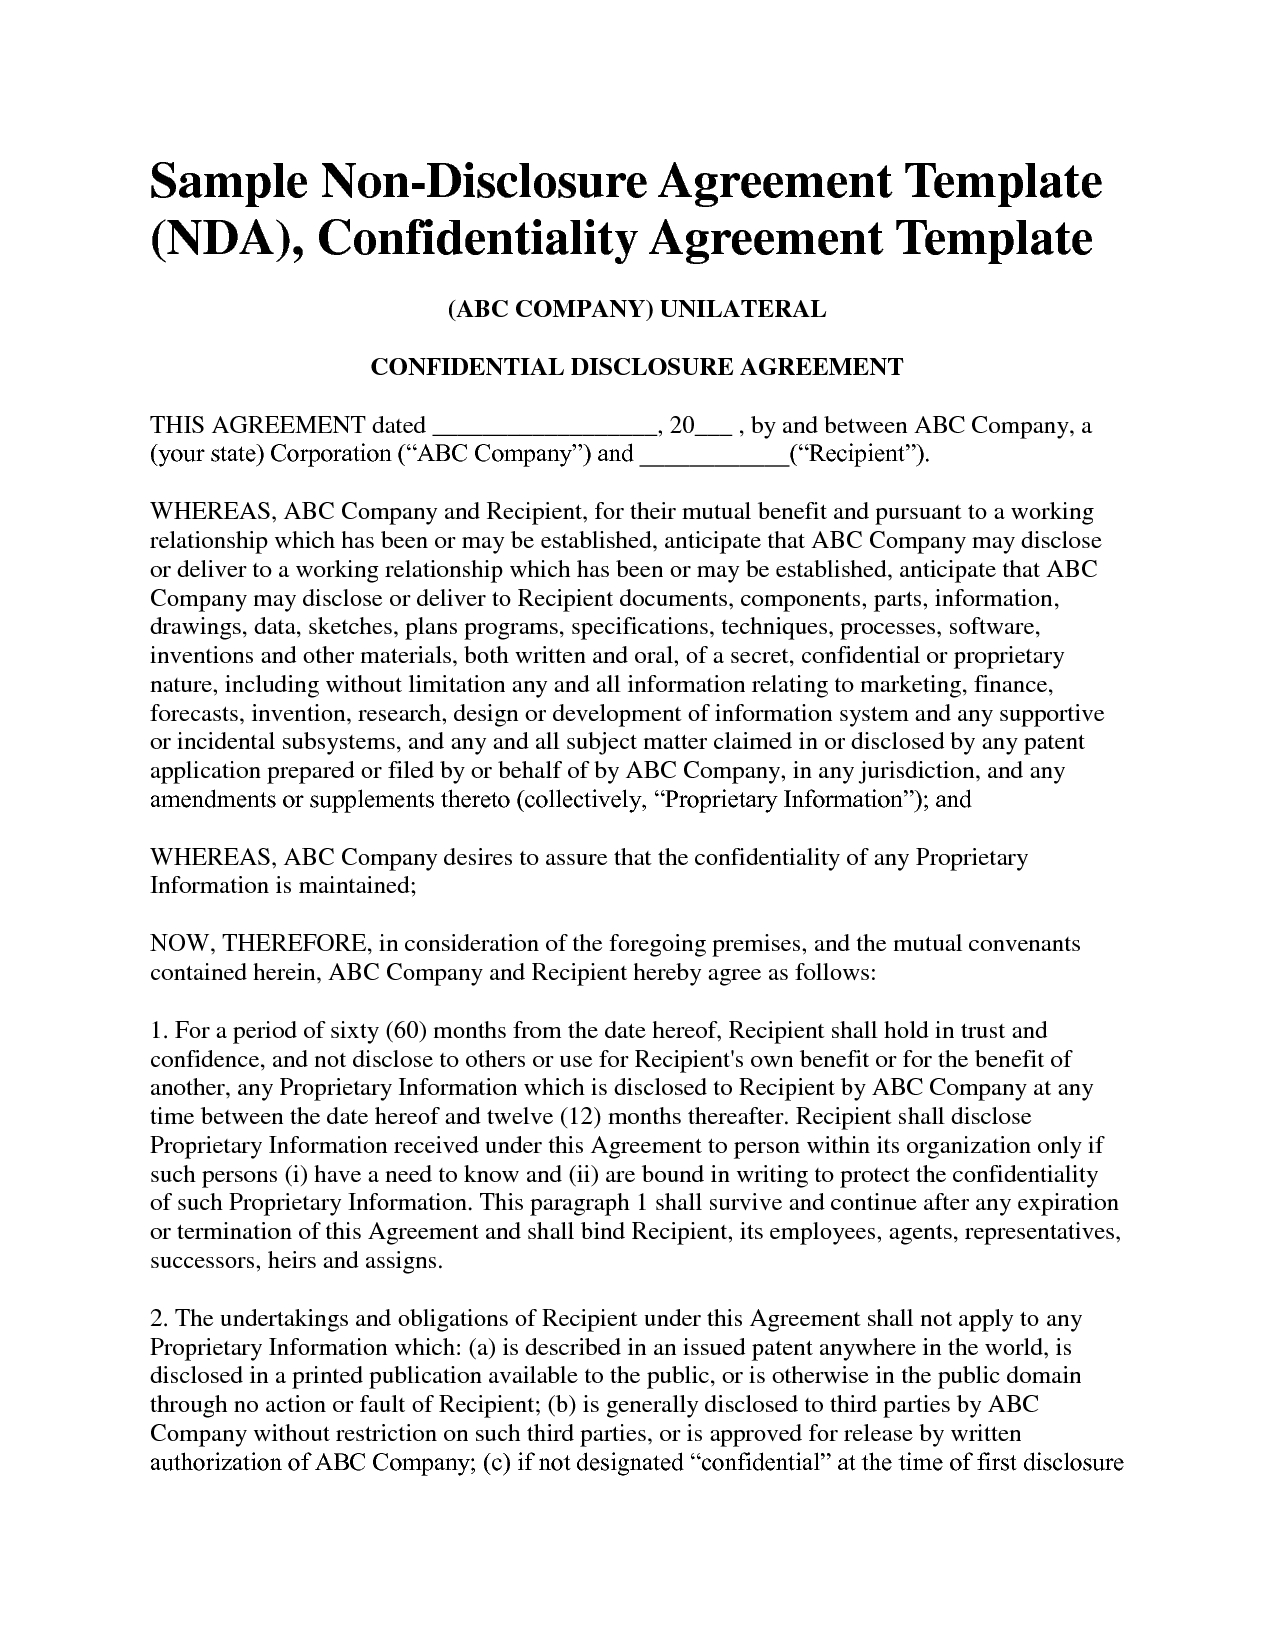 Confidentiality Agreement Template Free Stupendous Ideas Non In Therapy Confidentiality Agreement Template